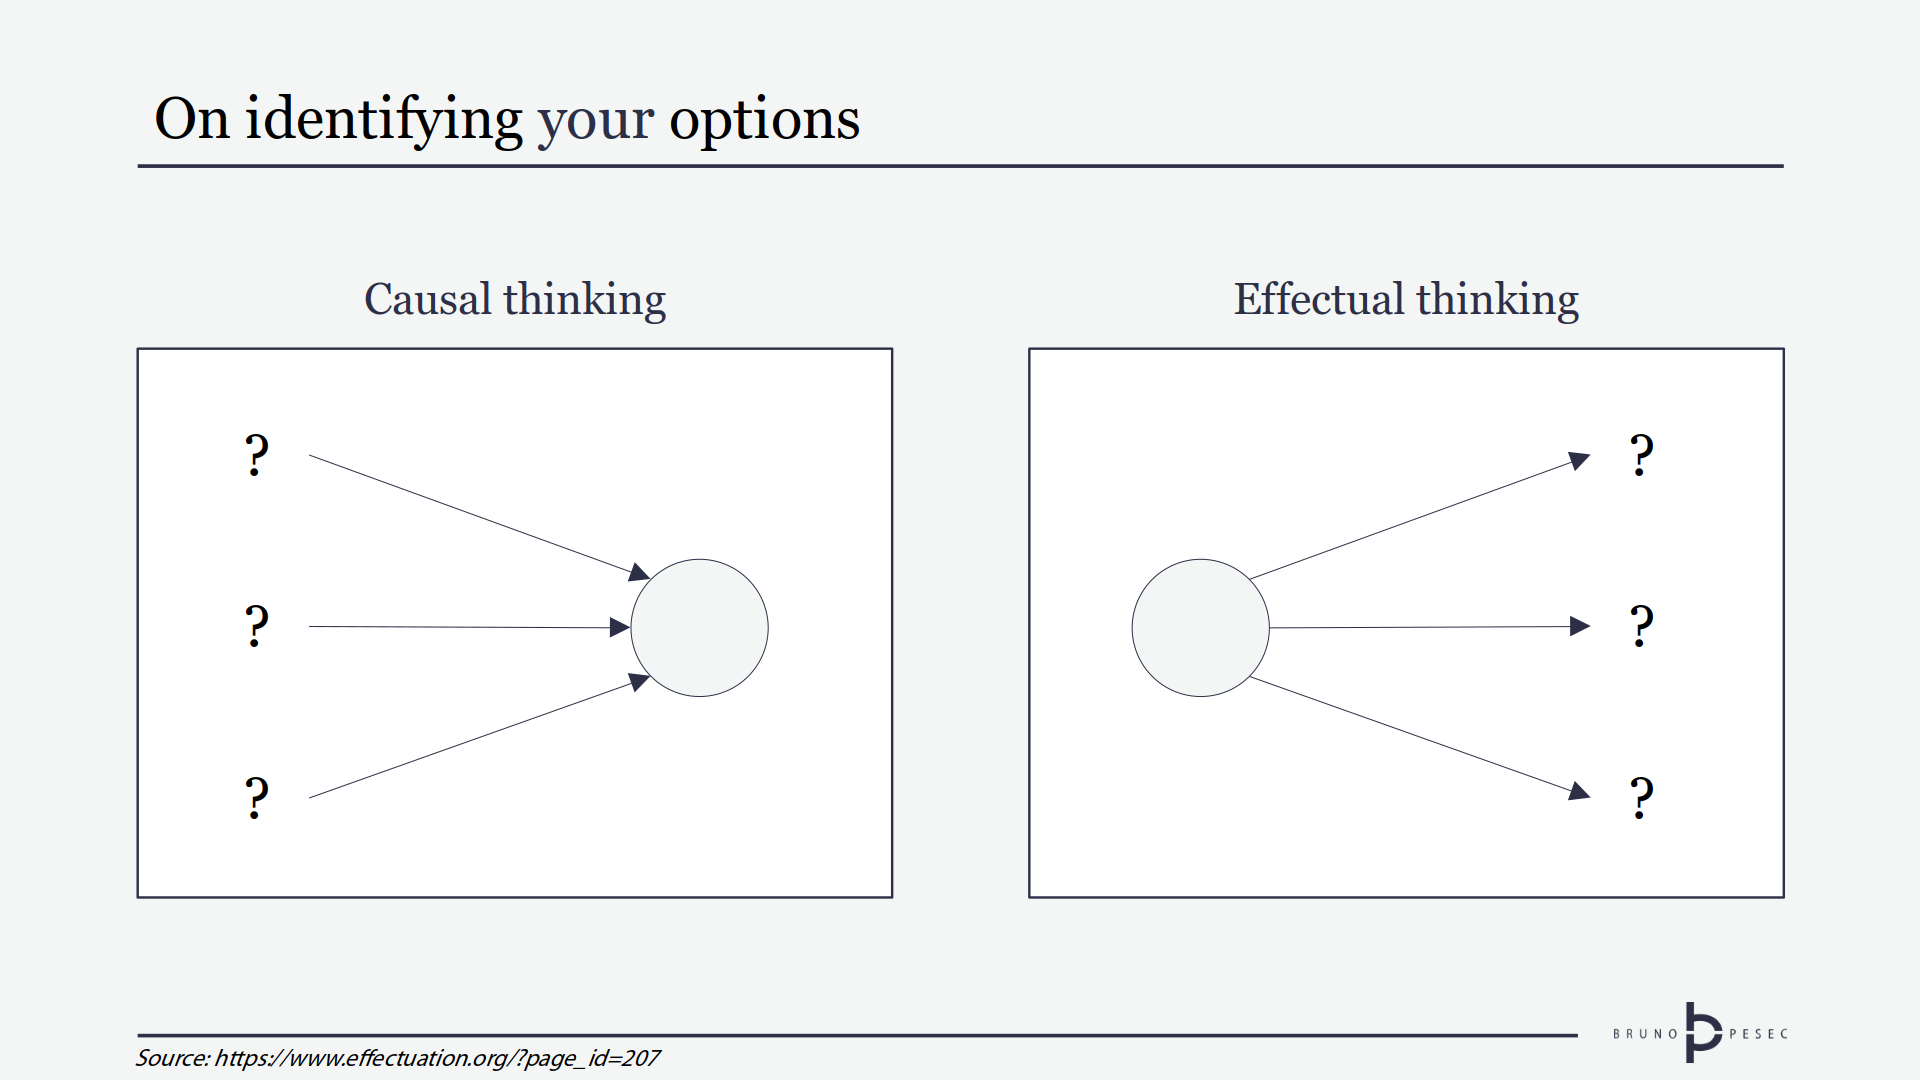 Casual and effectual thinking (illustration based on work by Sarasvathy)